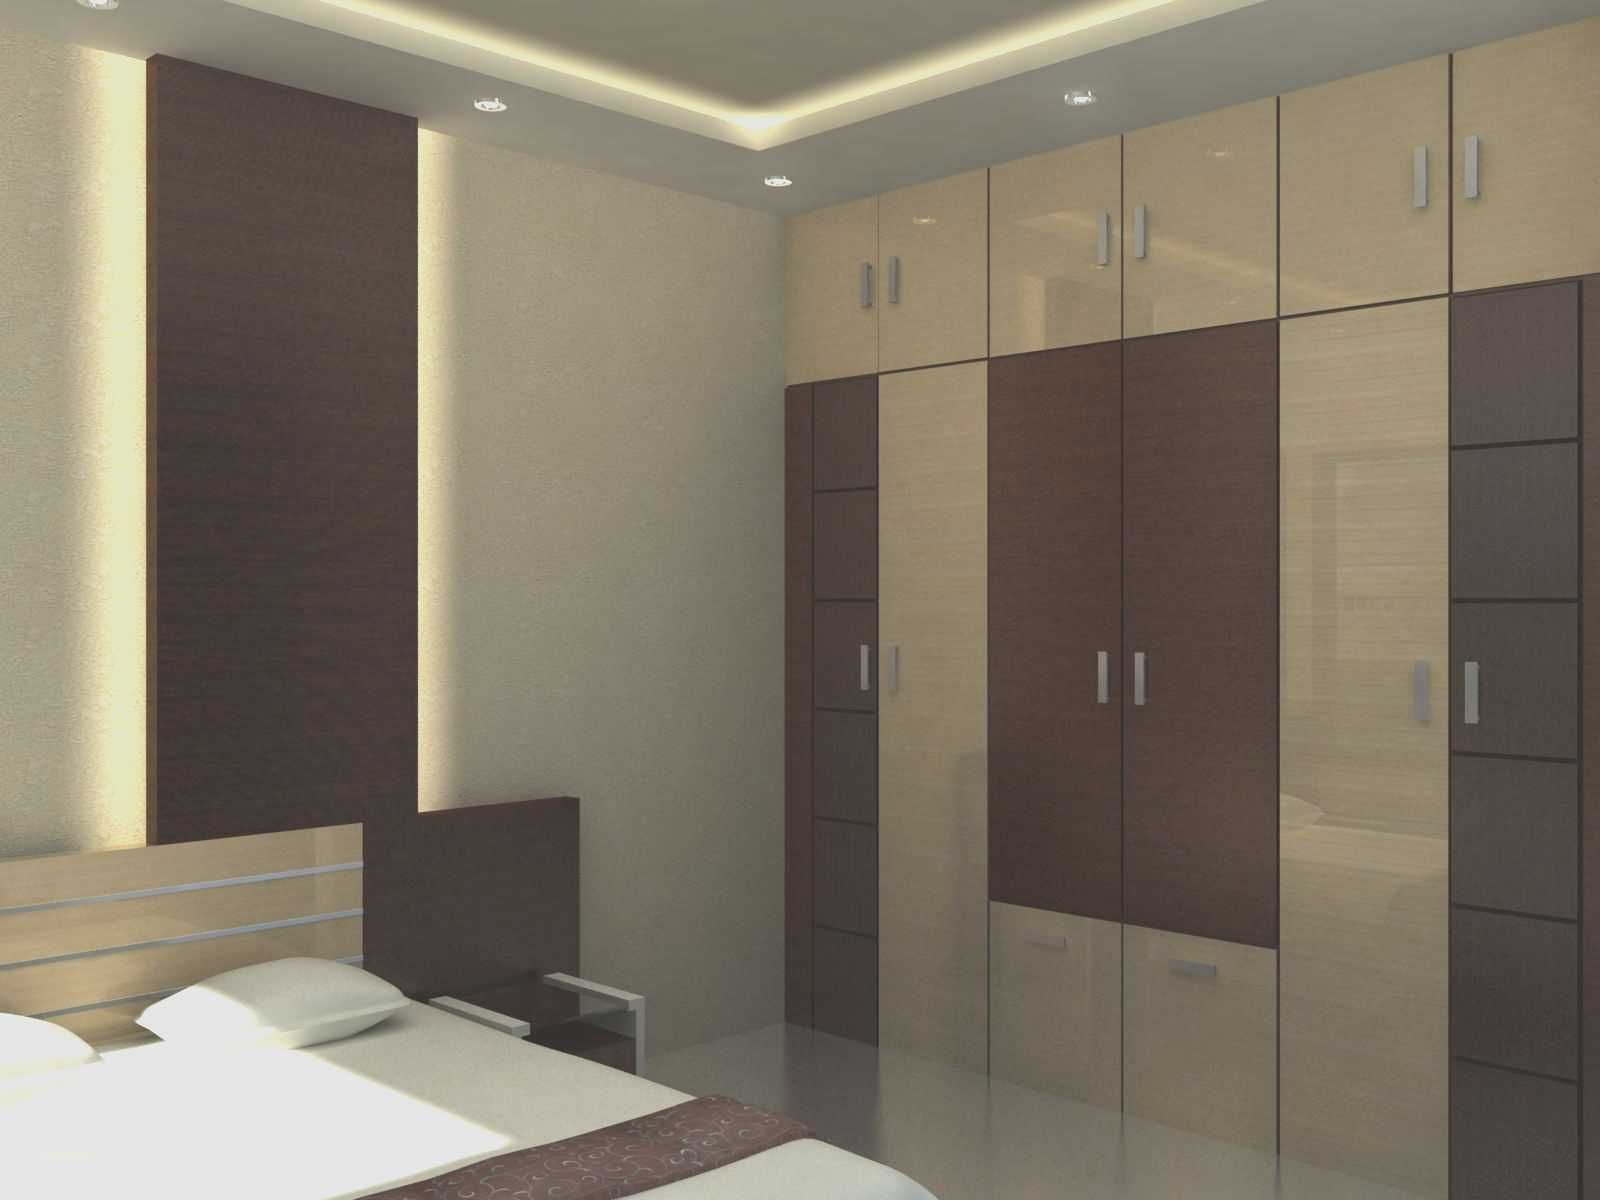 Beautiful Indian Bedroom Wardrobe Designs   Beautiful Indian Bedroom Wardrobe Designs,  Bedroom Design Awesome Armoire Wardrobe Wardrobe With